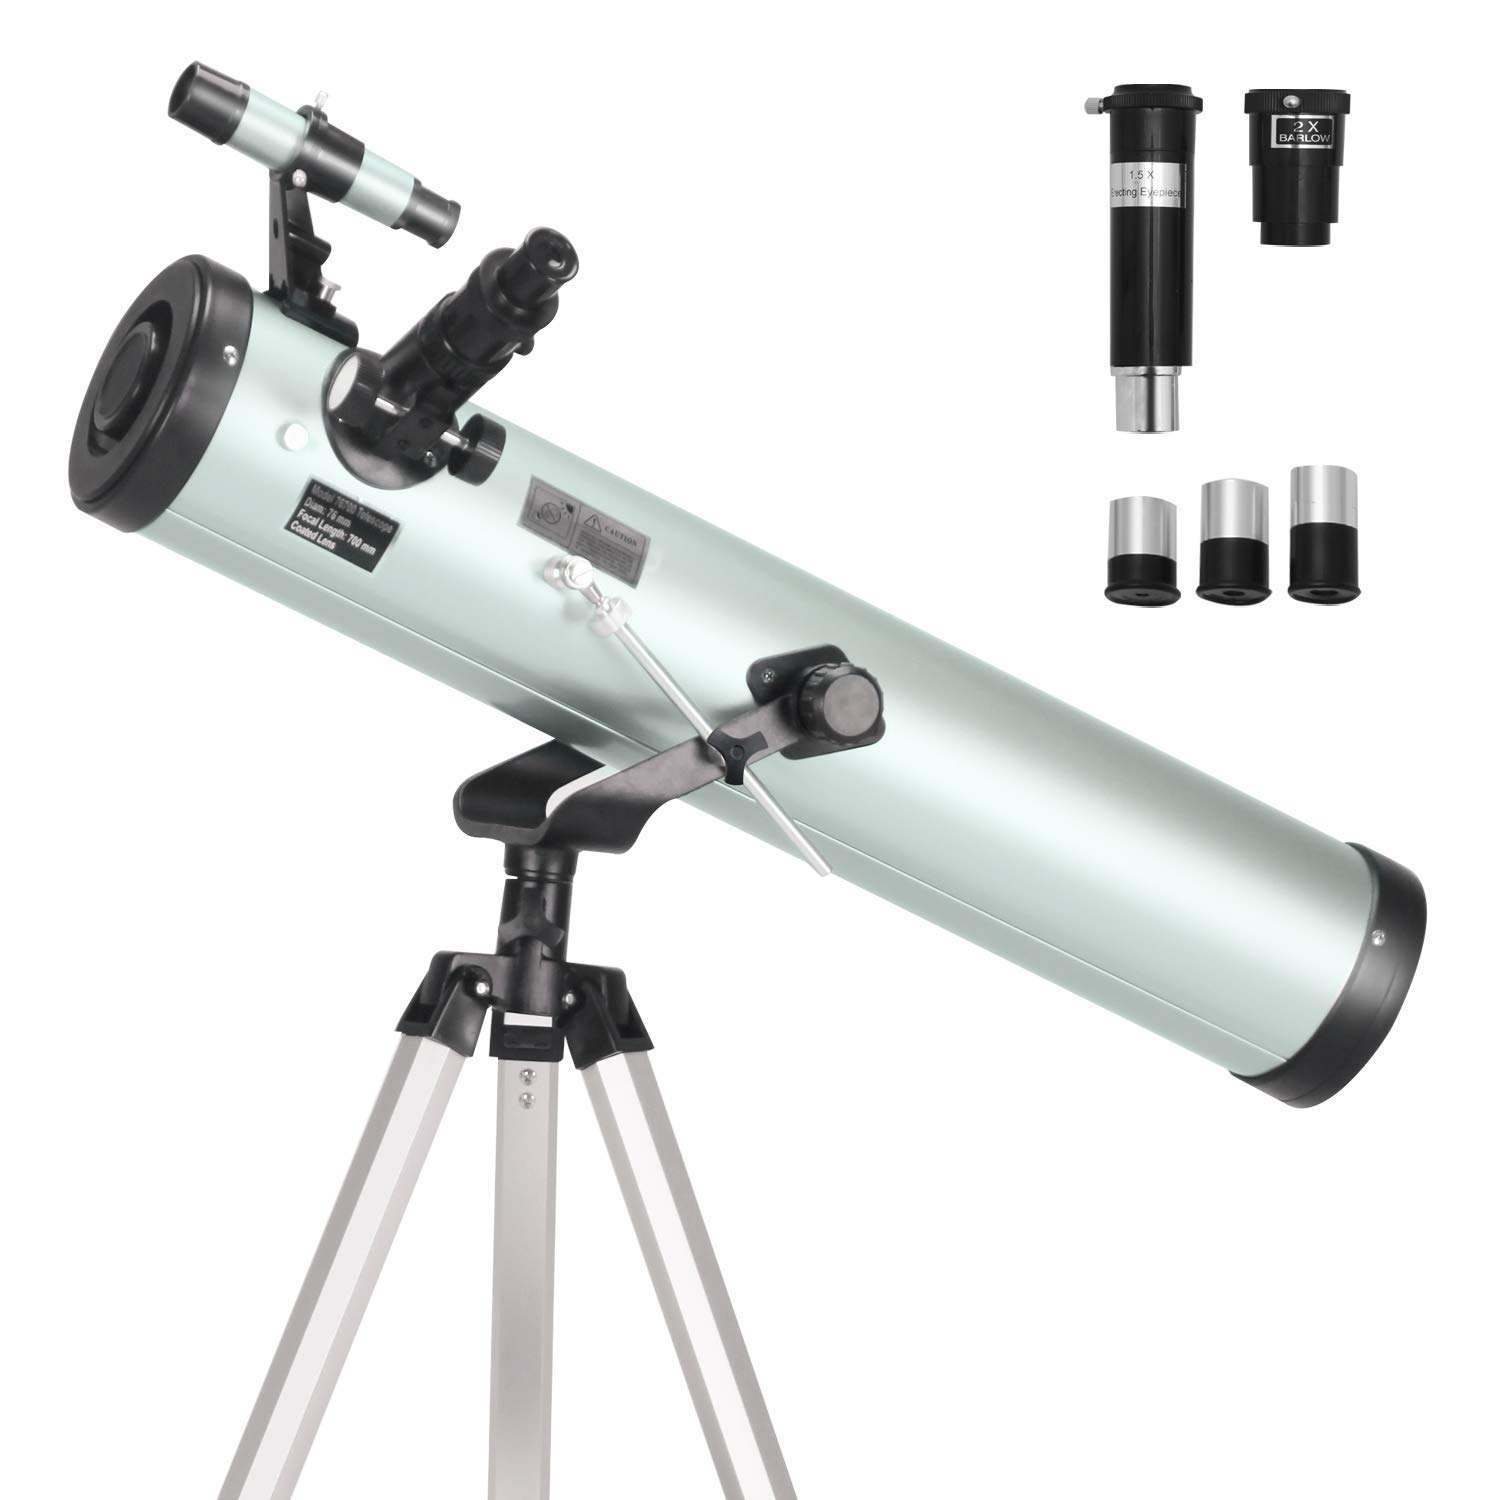 ToyerBee Telescope 76mm Aperture 700MM, with 3 Eyepieces H20mm H12.5mm H4mm&Tripod&Finder Scope&Moon Mirror, 70X-350X Magnification- Reflector Telescope for Kids& Students&Adults&Astronomy Beginners by ToyerBee